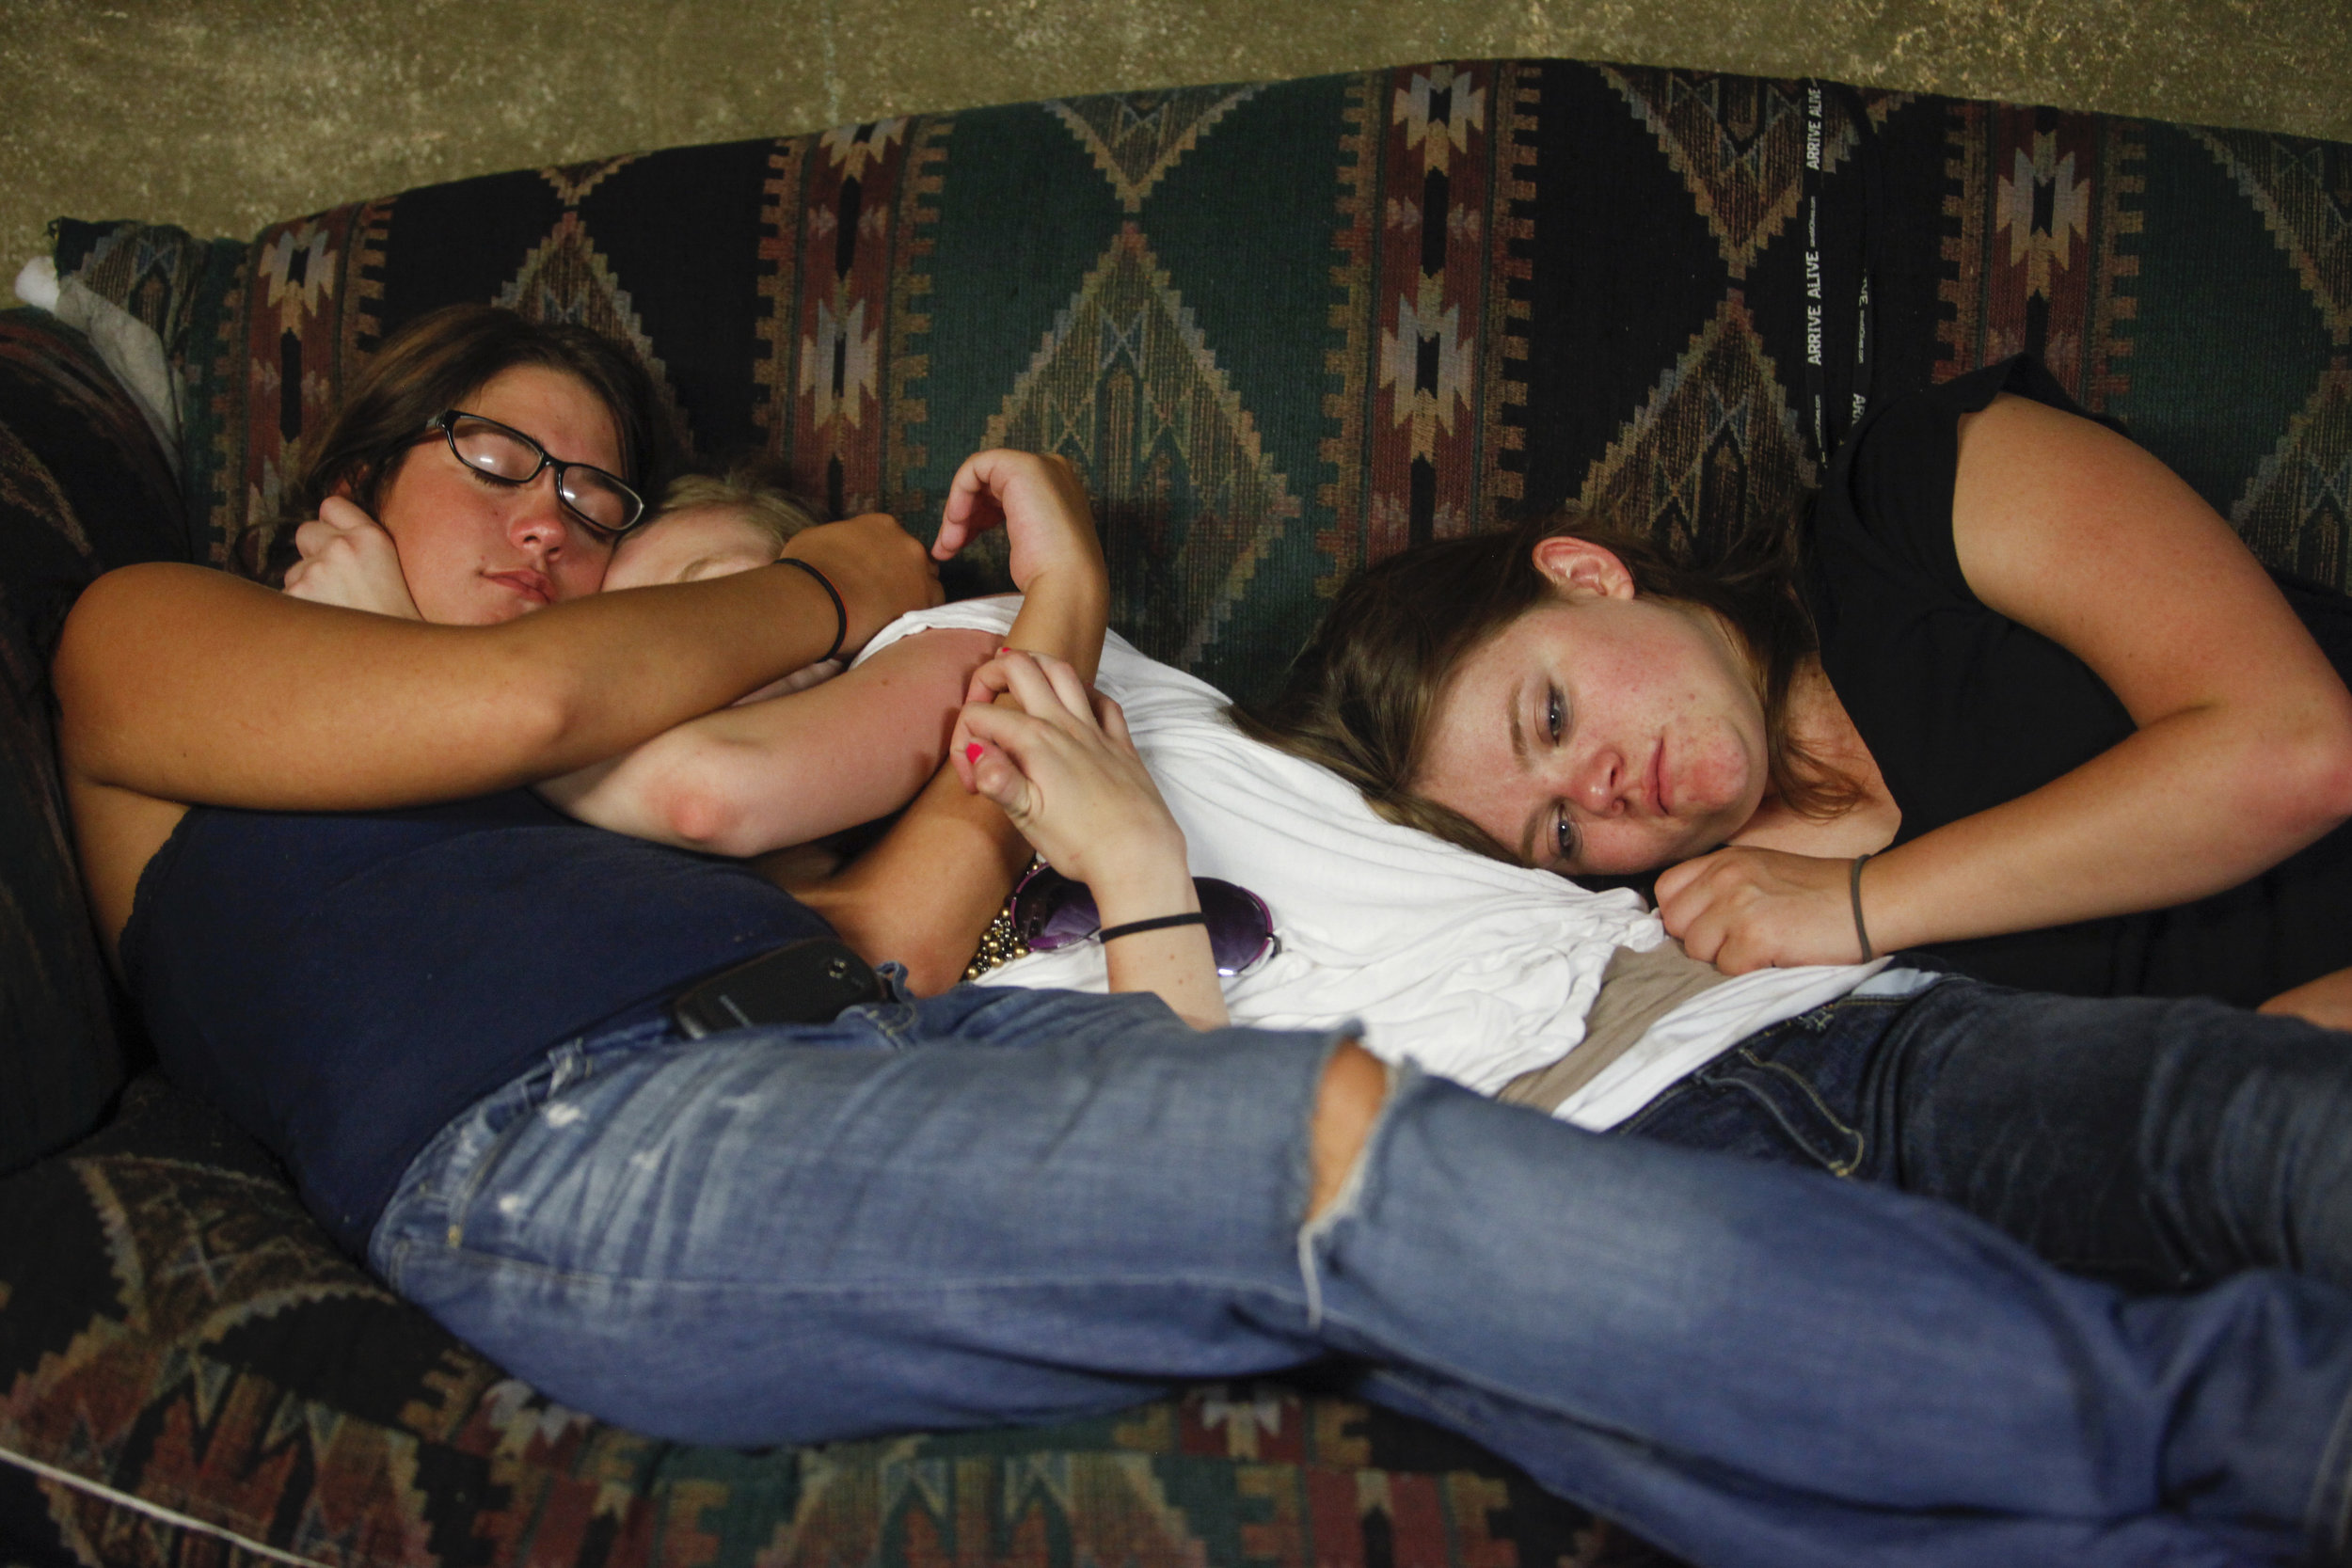 Cami Barnita, left, hugs Heather Hopkins as they are about to pass out after a party on the couch of their friend Sunday evening, May 6, 2012 in West Plains, Mo. Samantha Price lays with them and looks away.